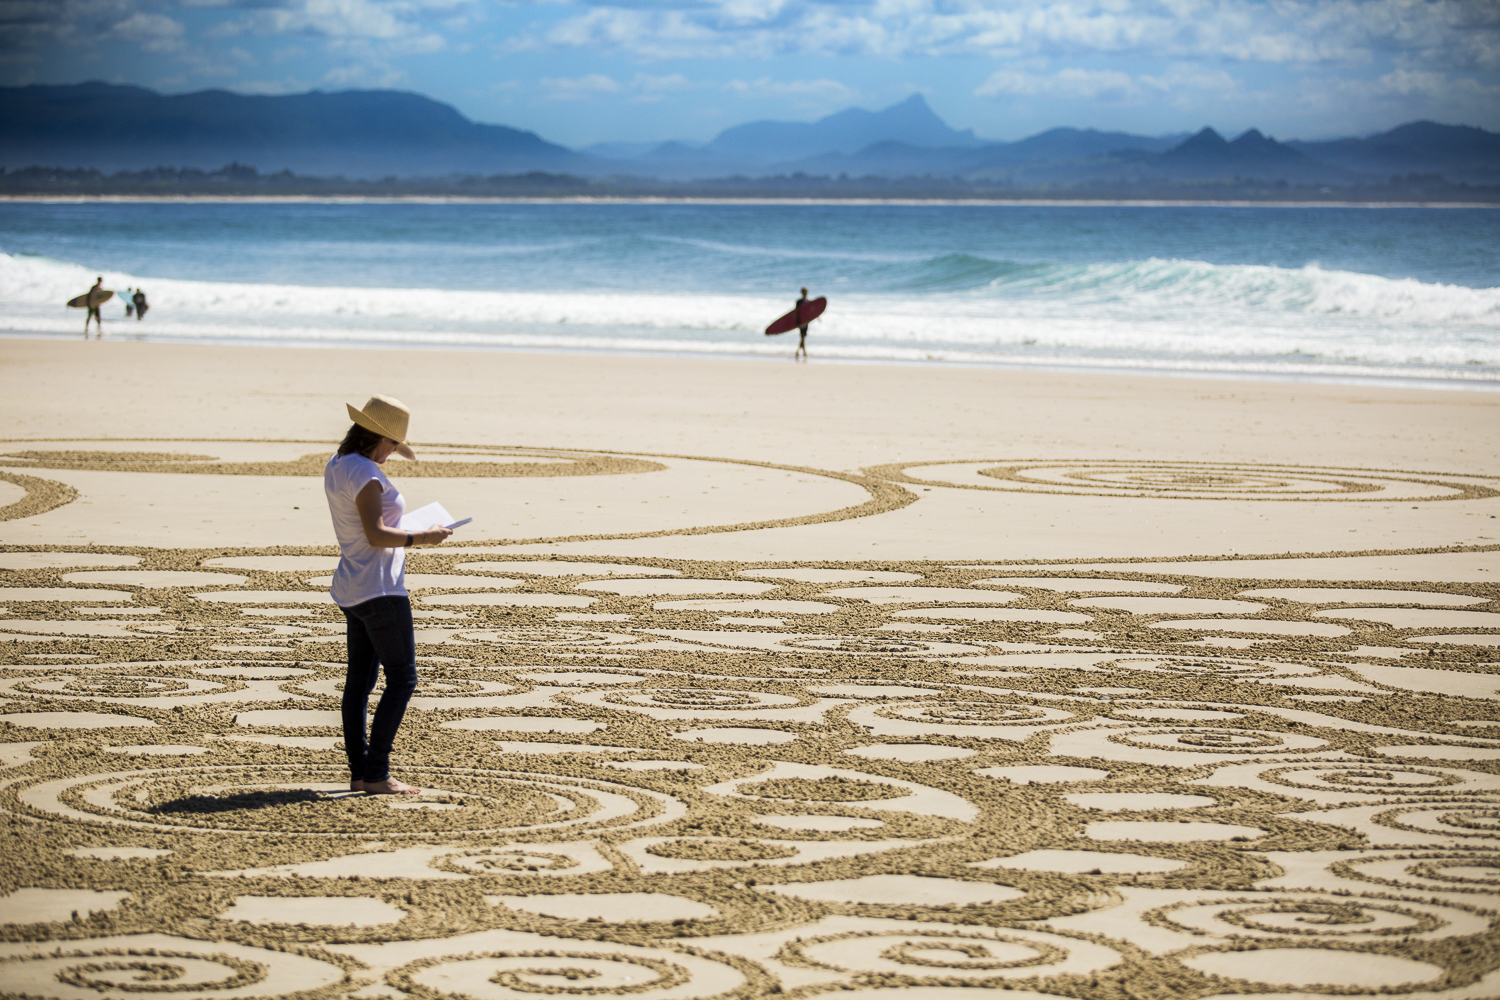 https://byronwritersfestival.com/wp-content/uploads/2016/05/Byron-Writers-Festival-Sand-Art-by-Craig-Gascoigne-Photo-by-Evan-Malcolm-8-copy.jpg